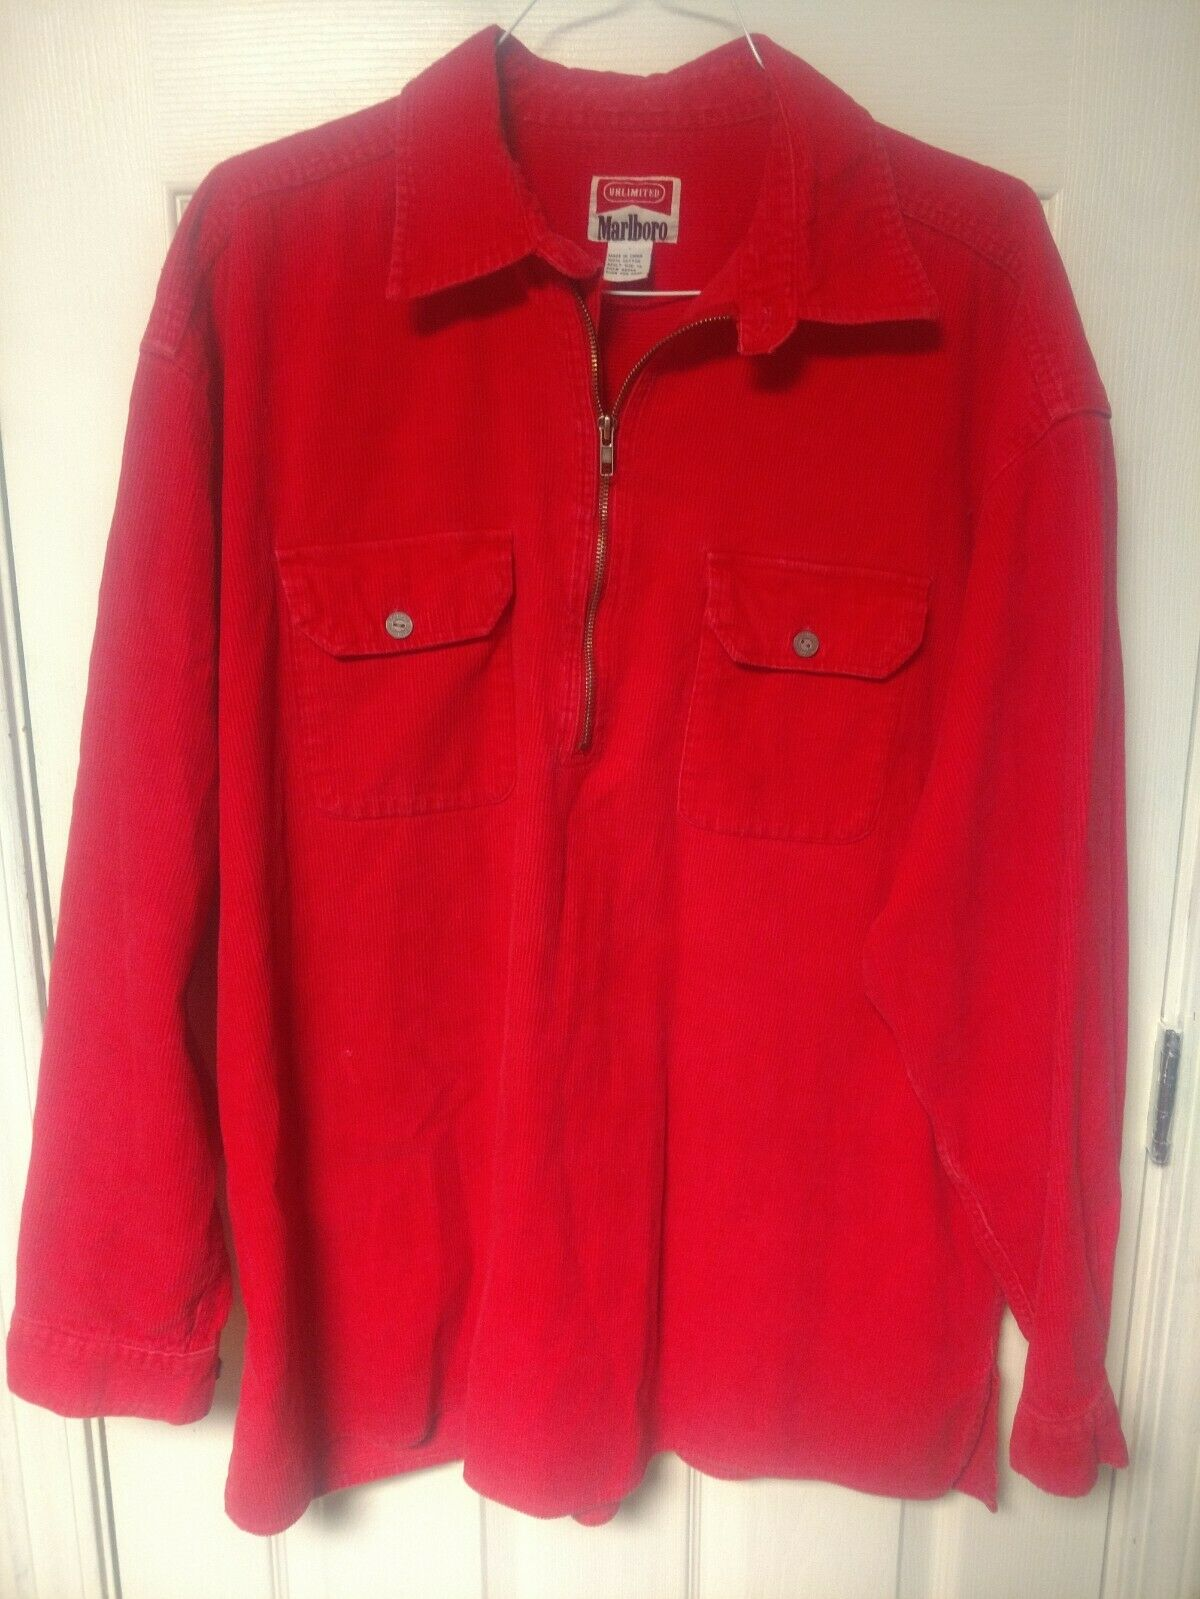 MarlbGold unlimited corduroy pull over XL